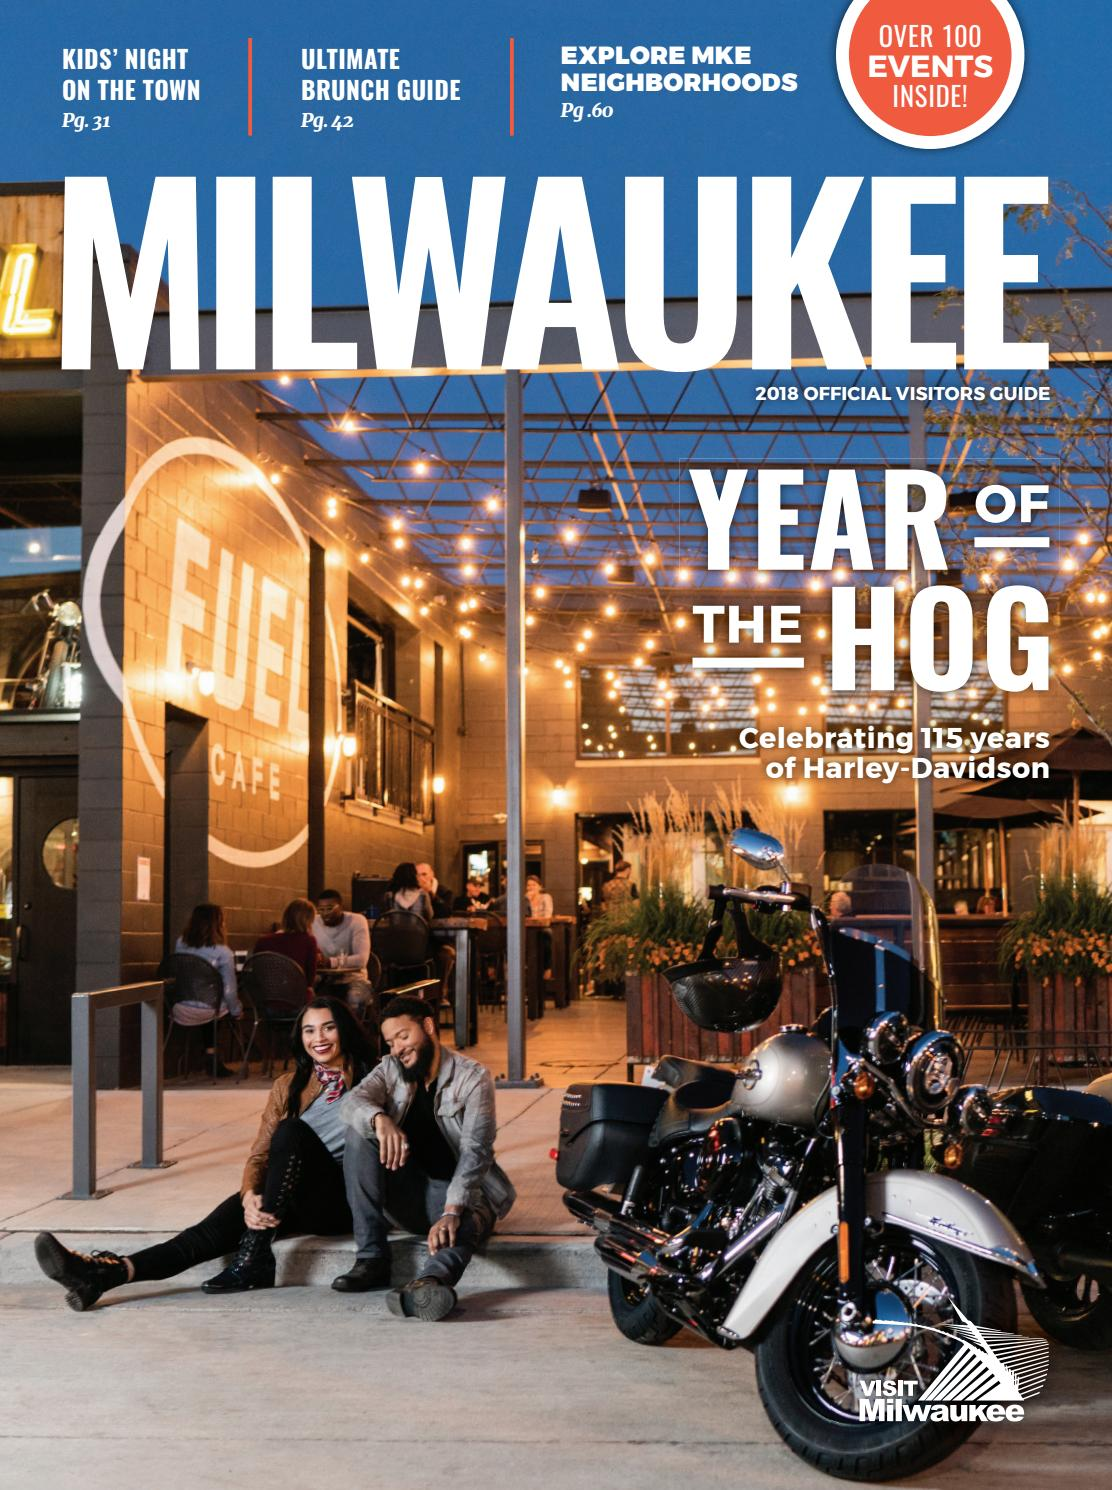 2018 Official Visitors Guide by VISIT Milwaukee - issuu 6055d0ffb